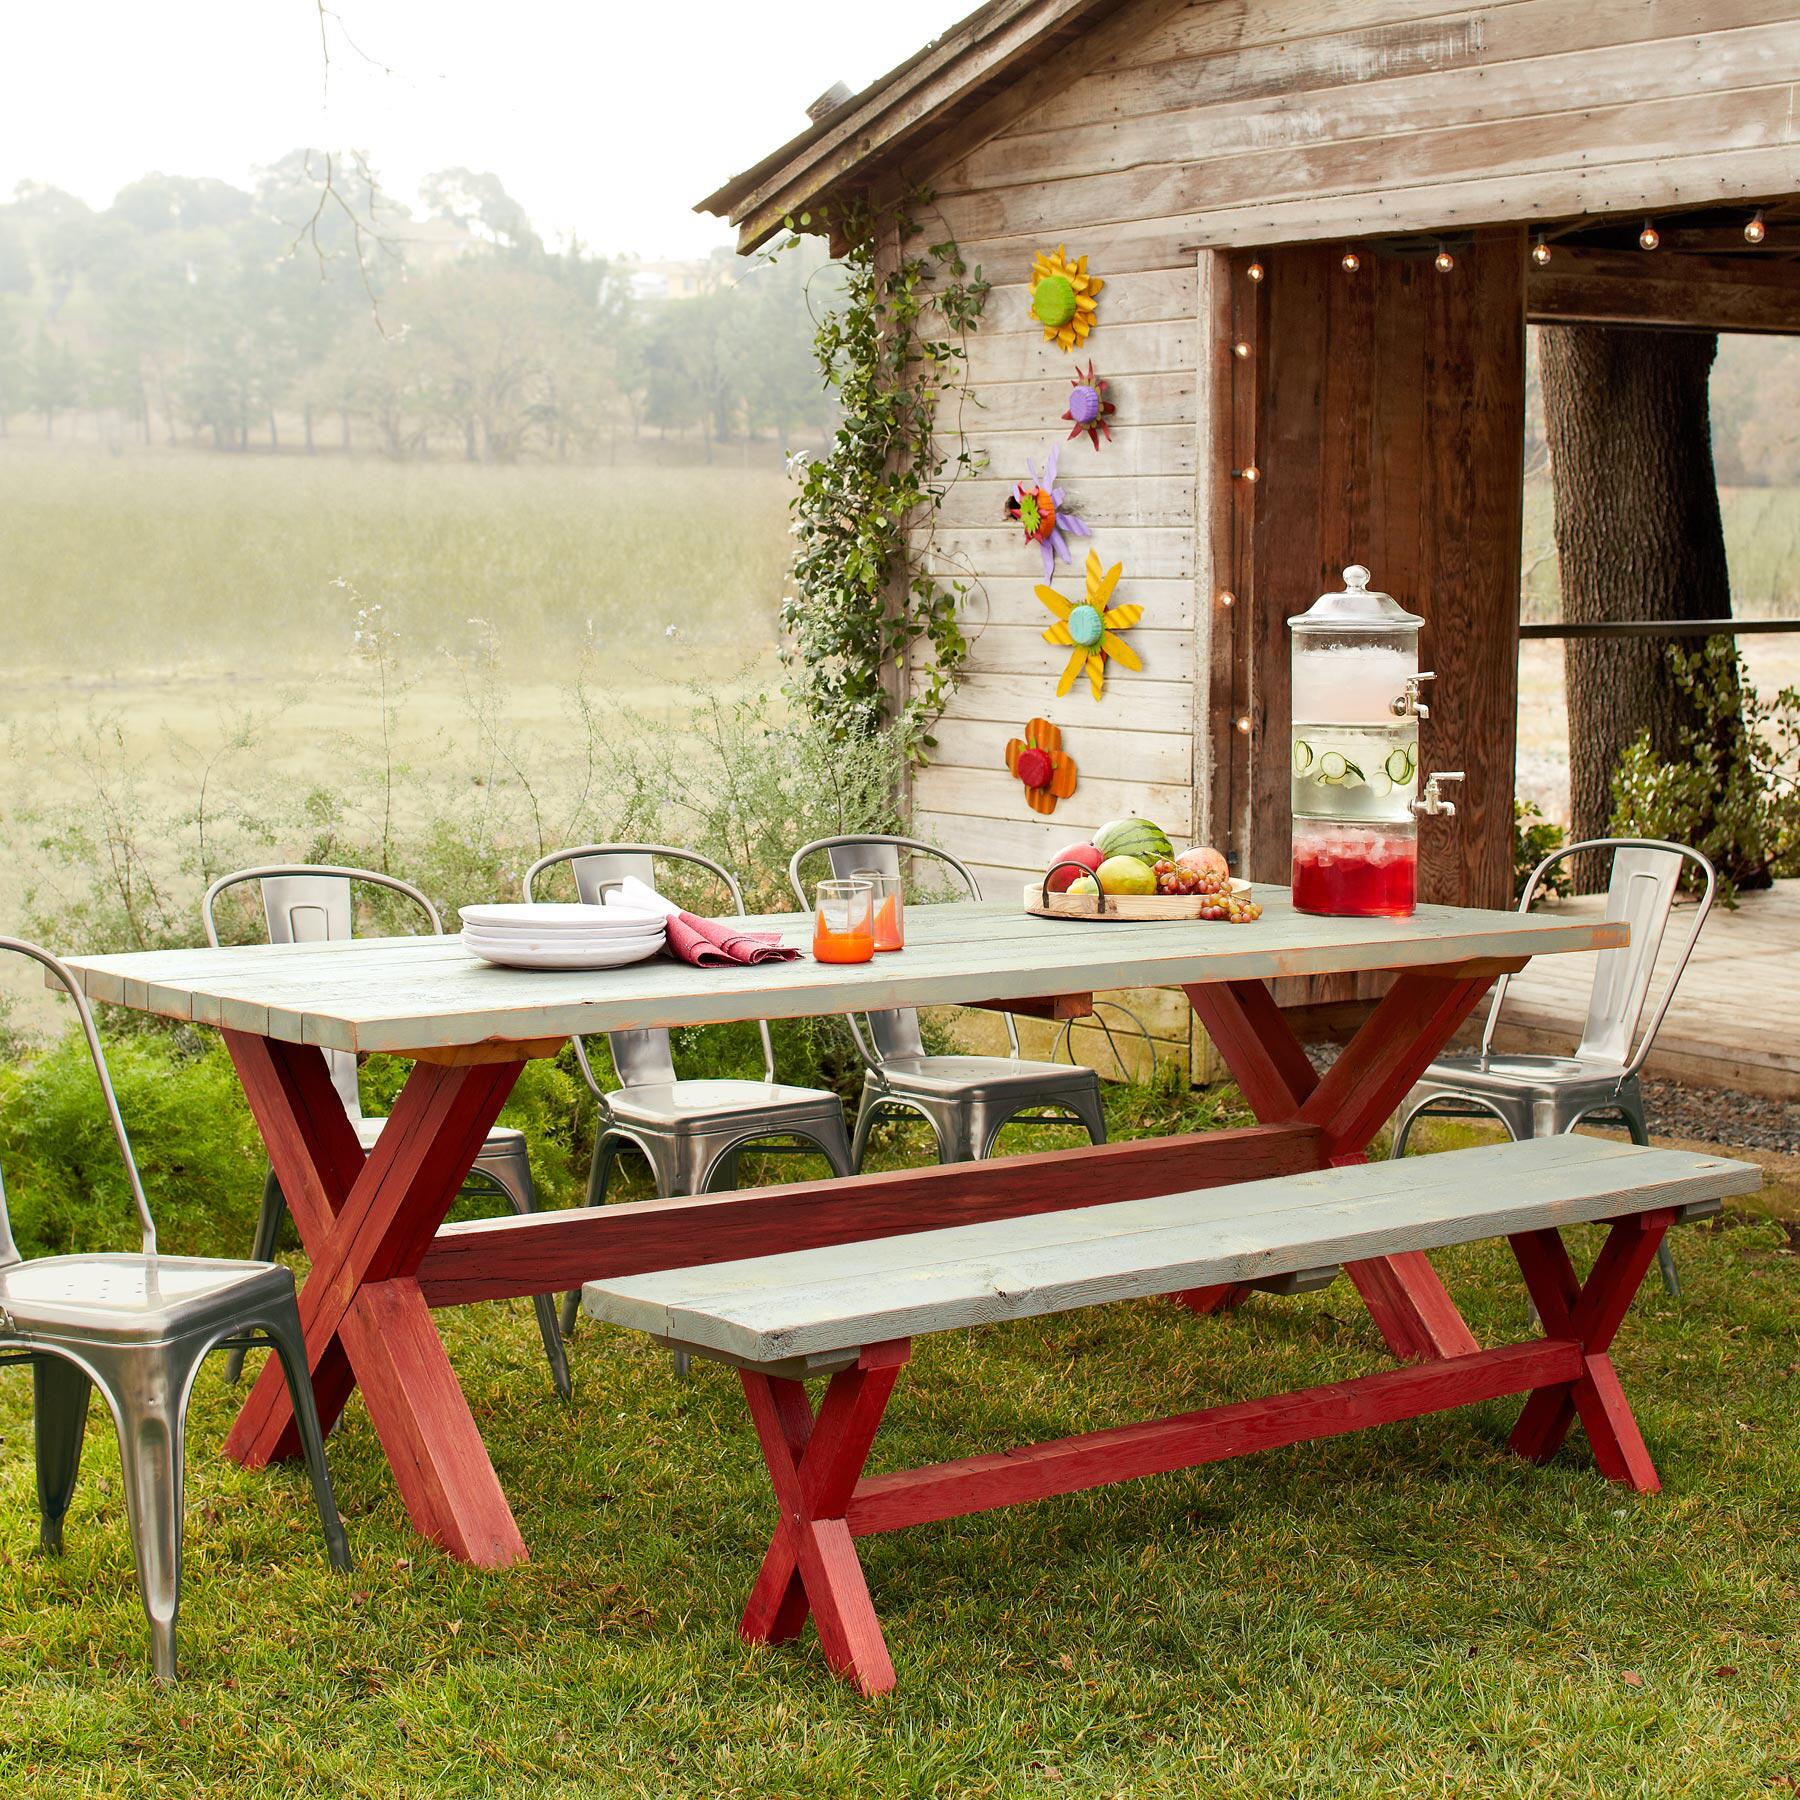 GUERNSEY FARMS OUTDOOR DINING TABLE: View 1